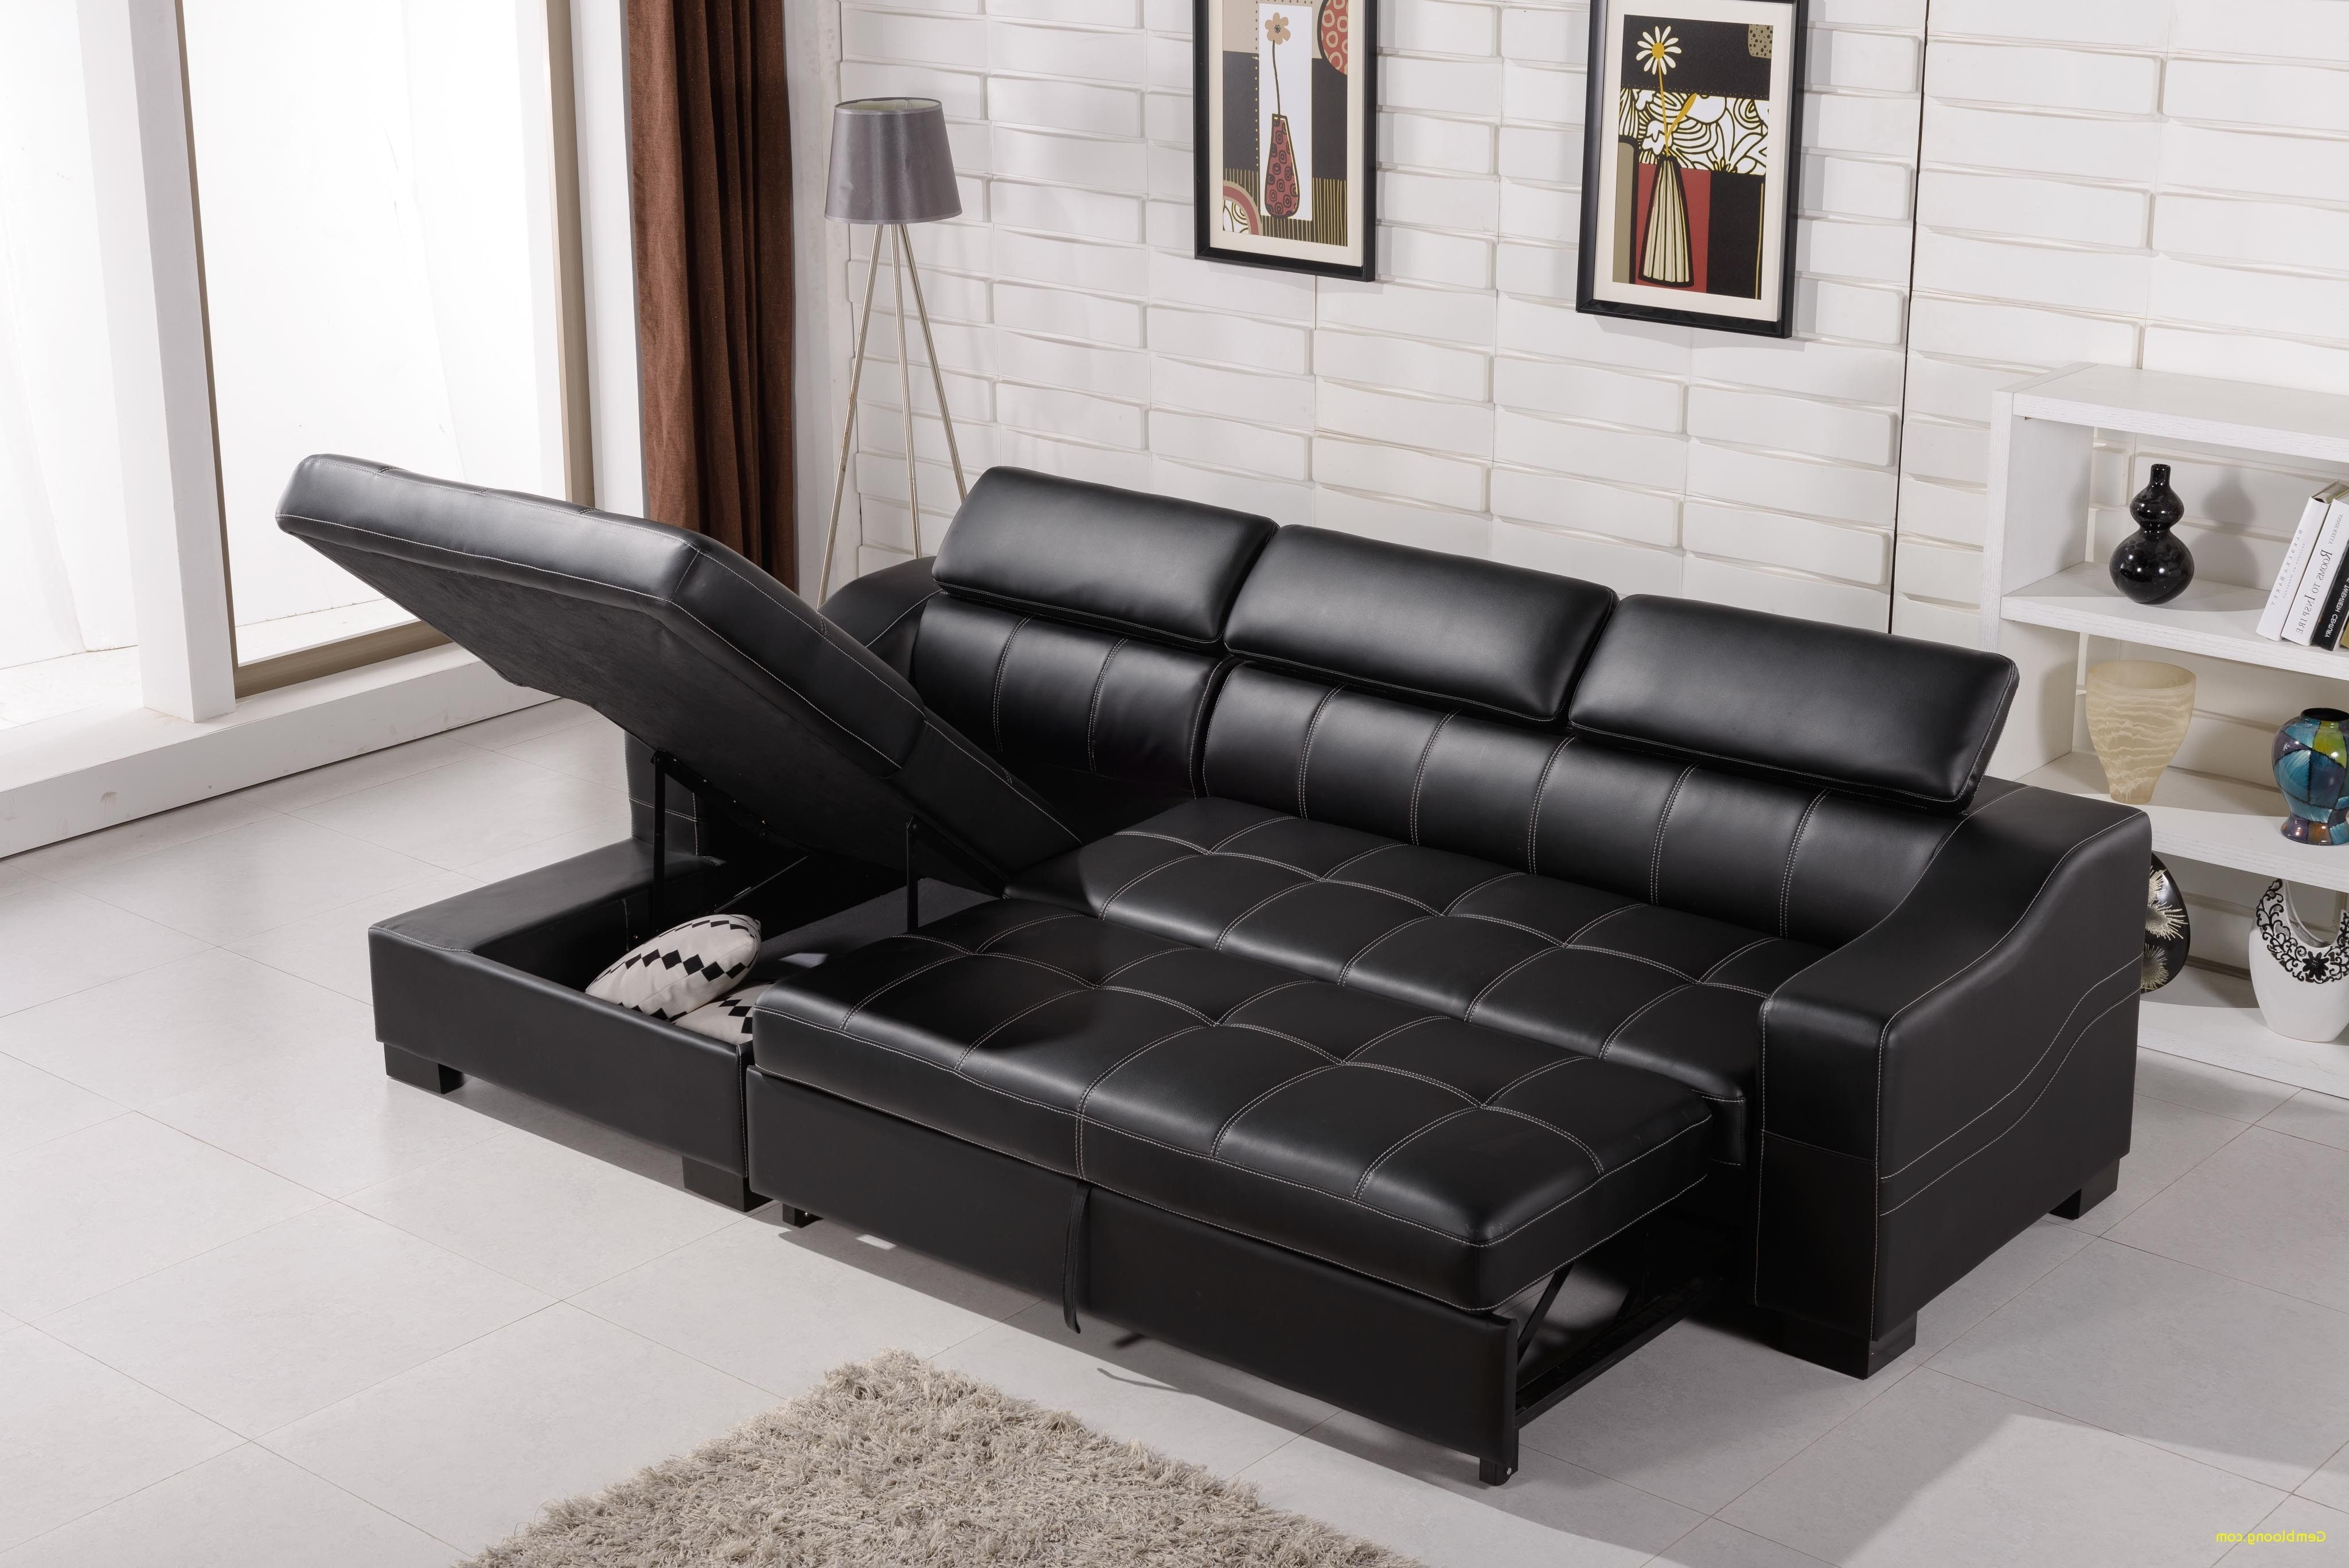 Sleeper Sofa With Storage Chaise Inspirational Incognito Sectional Intended For 2017 Sleeper Sofas With Storage Chaise (View 13 of 15)